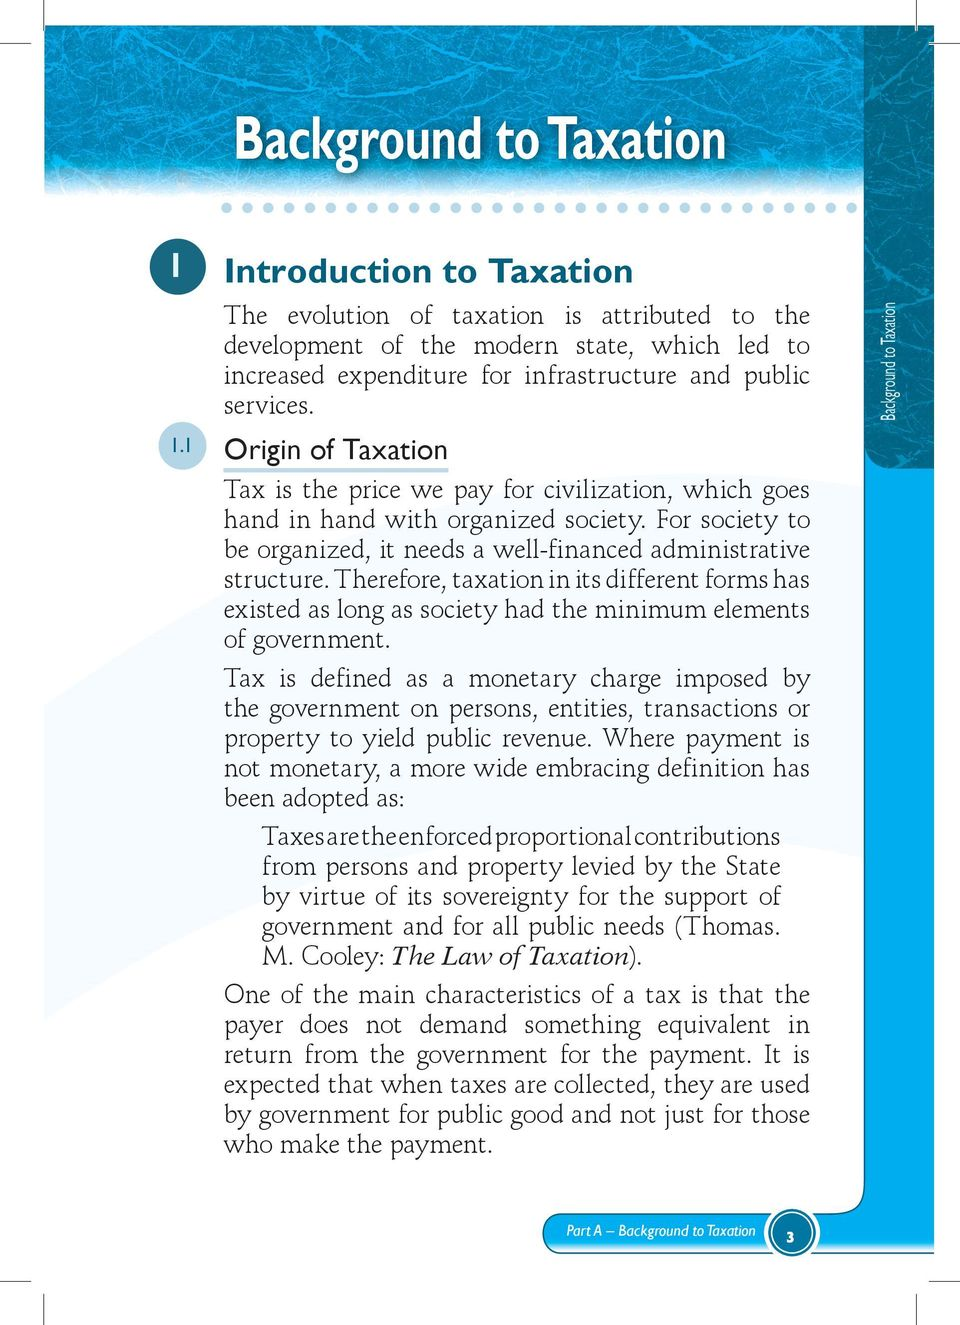 For society to be organized, it needs a well-financed administrative structure. Therefore, taxation in its different forms has existed as long as society had the minimum elements of government.